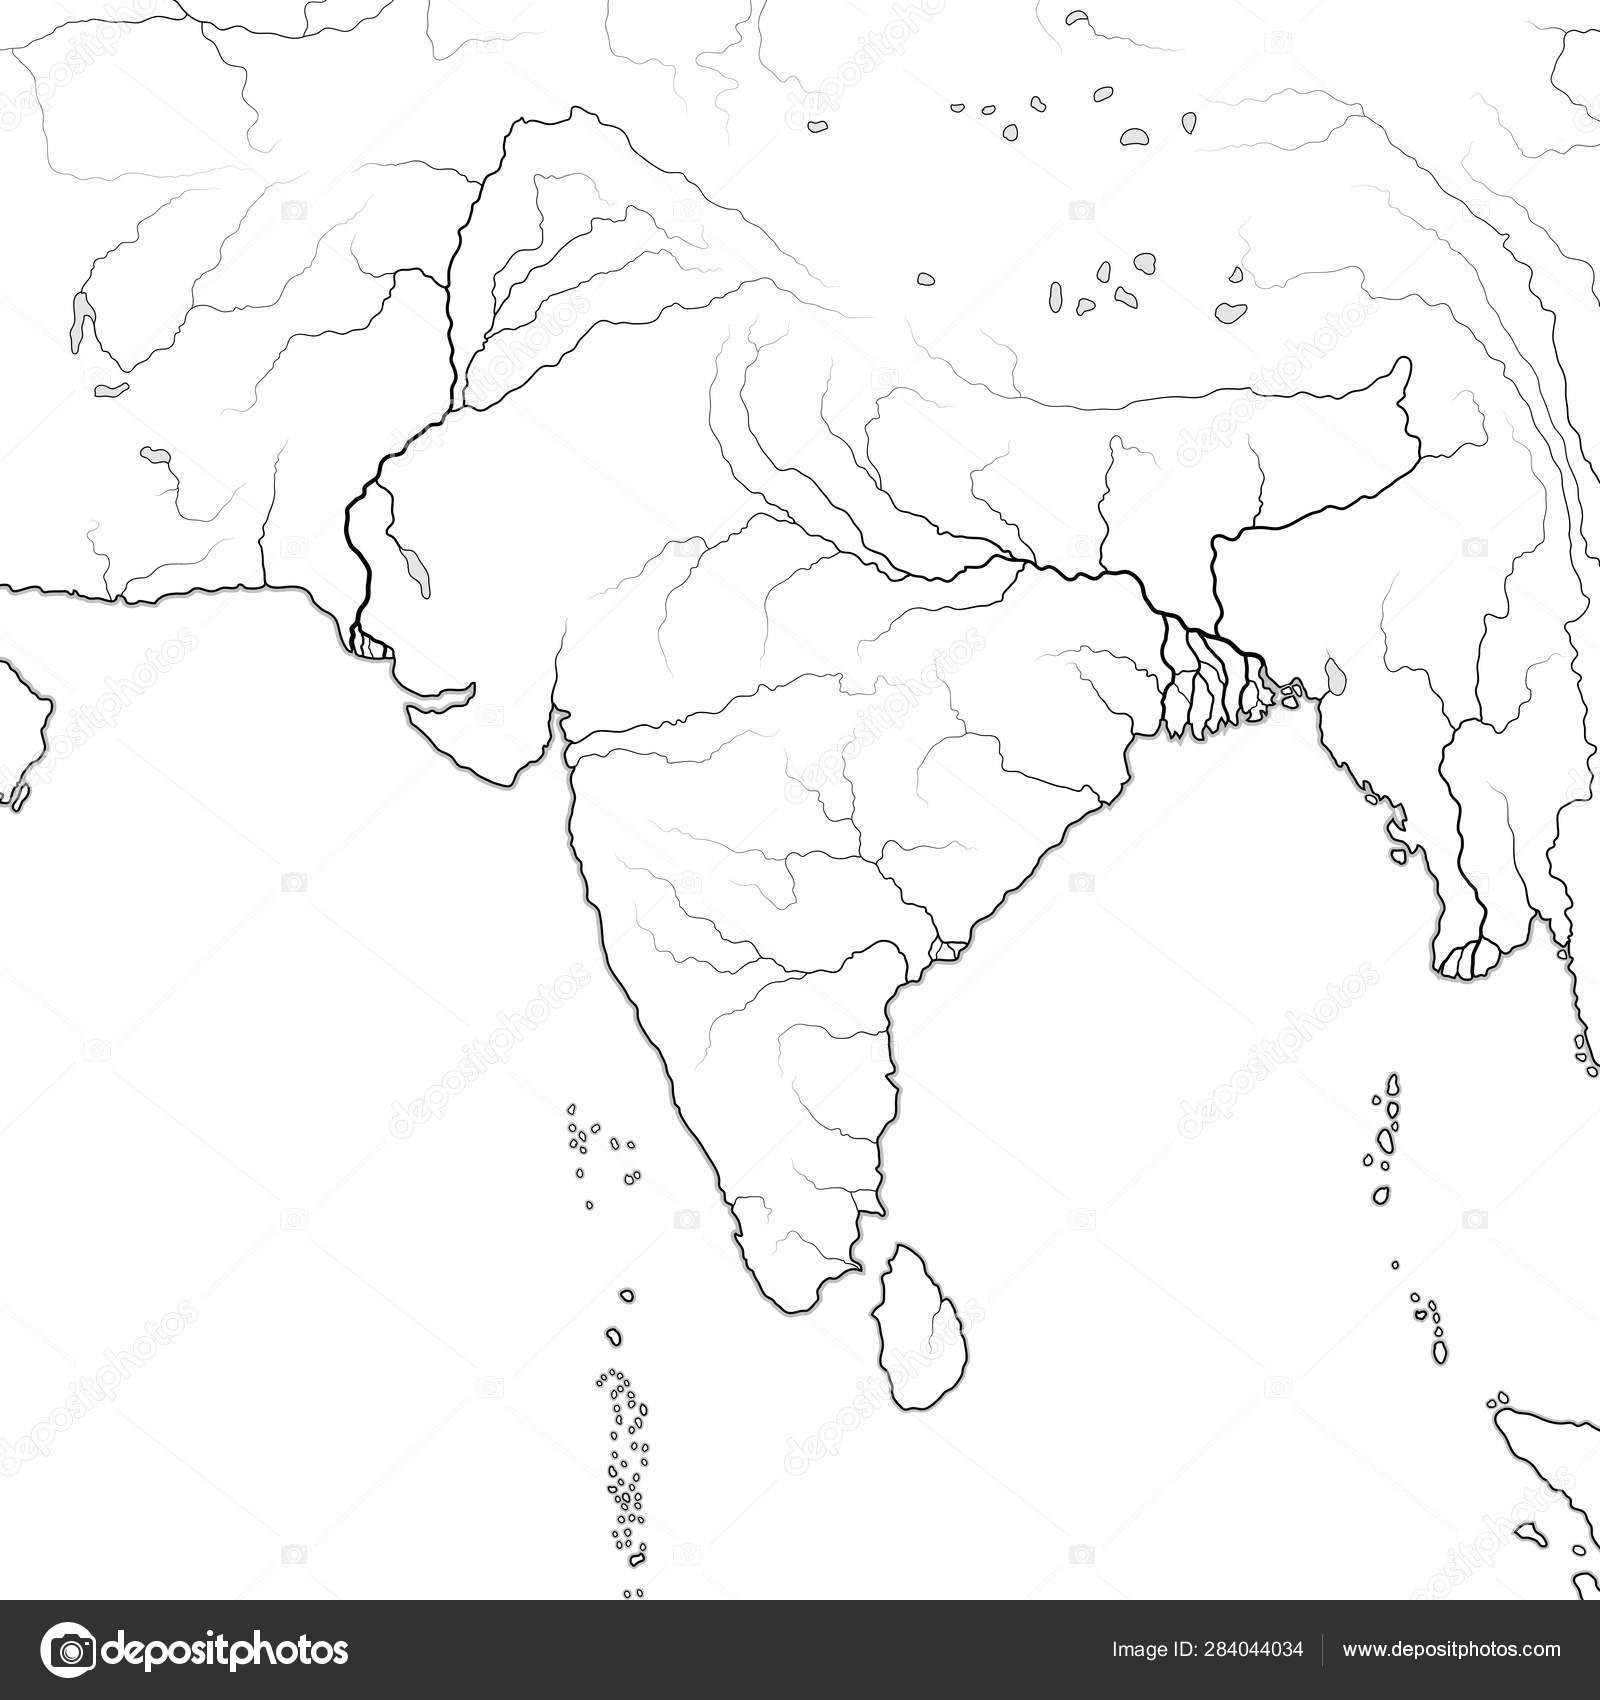 World Map of INDIAN SUBCONTINENT in SOUTH ASIA: India, stan ... on